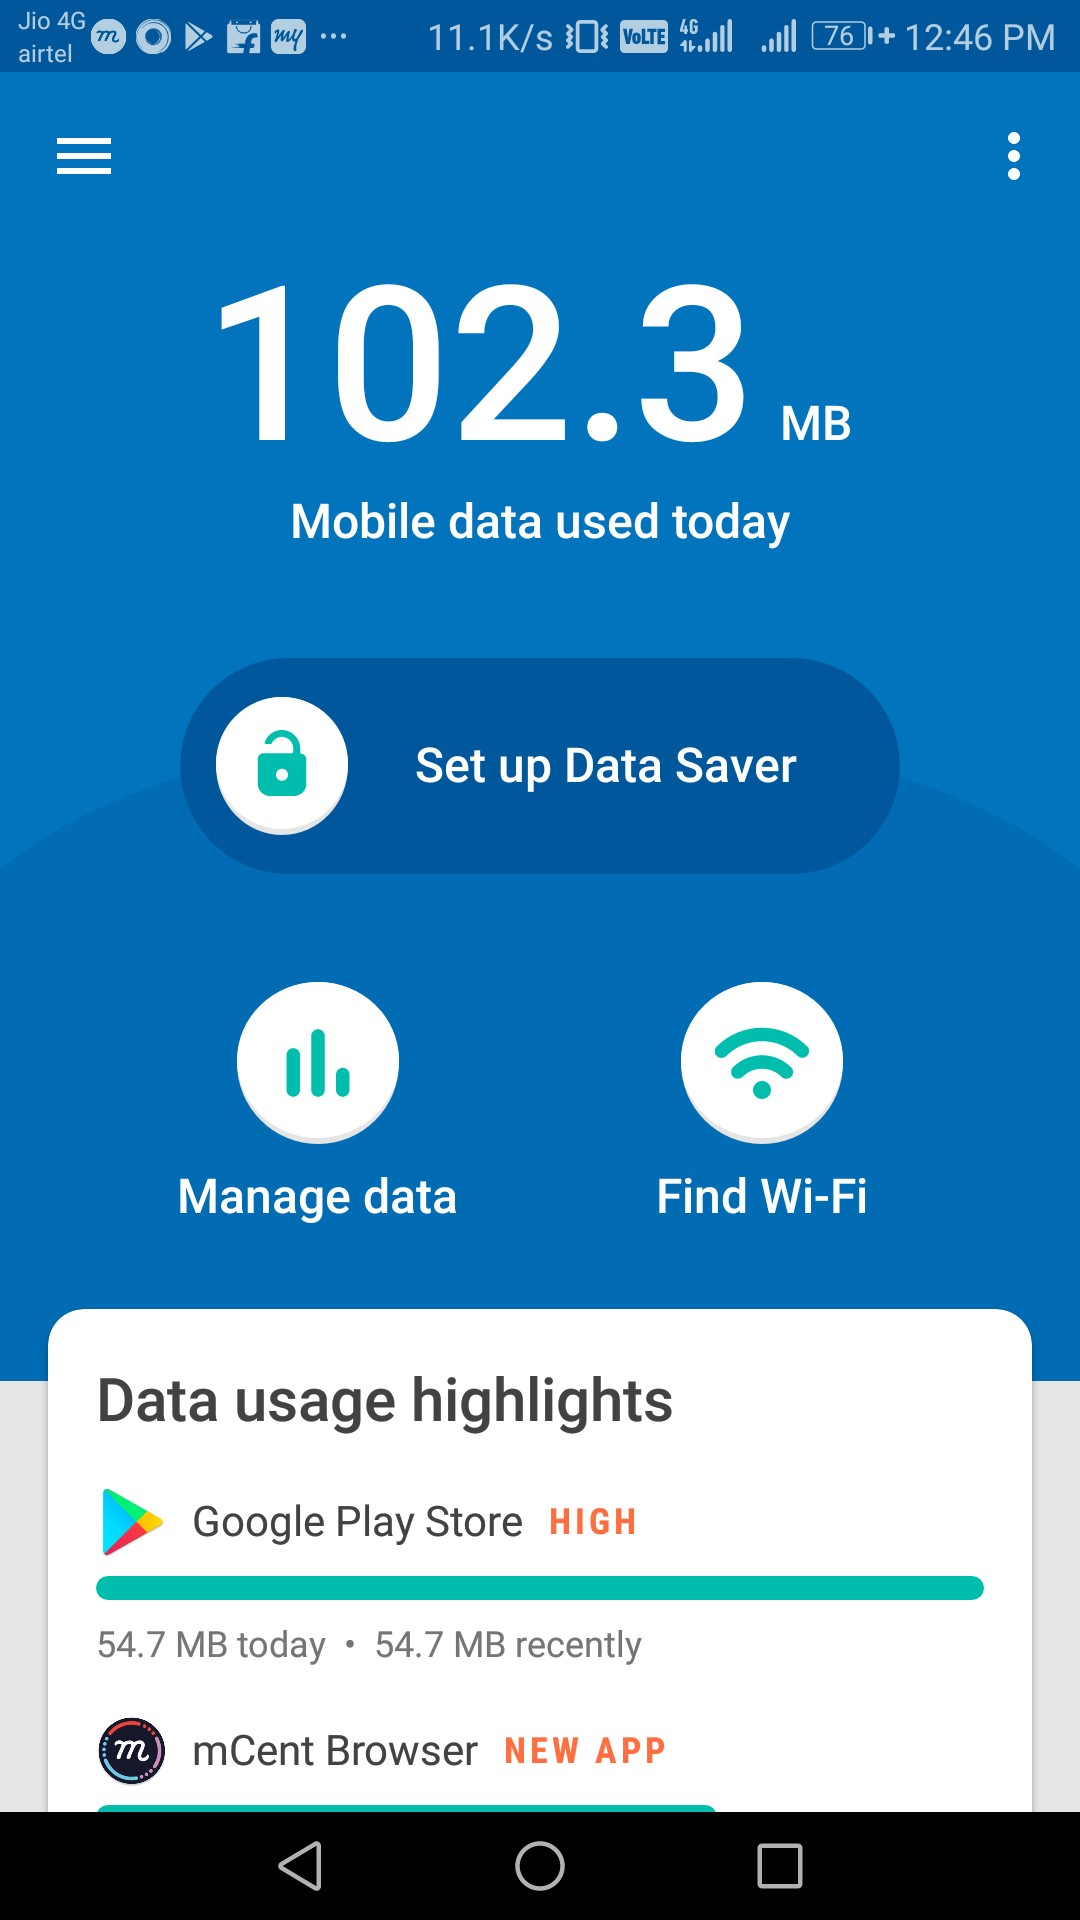 set up data saver